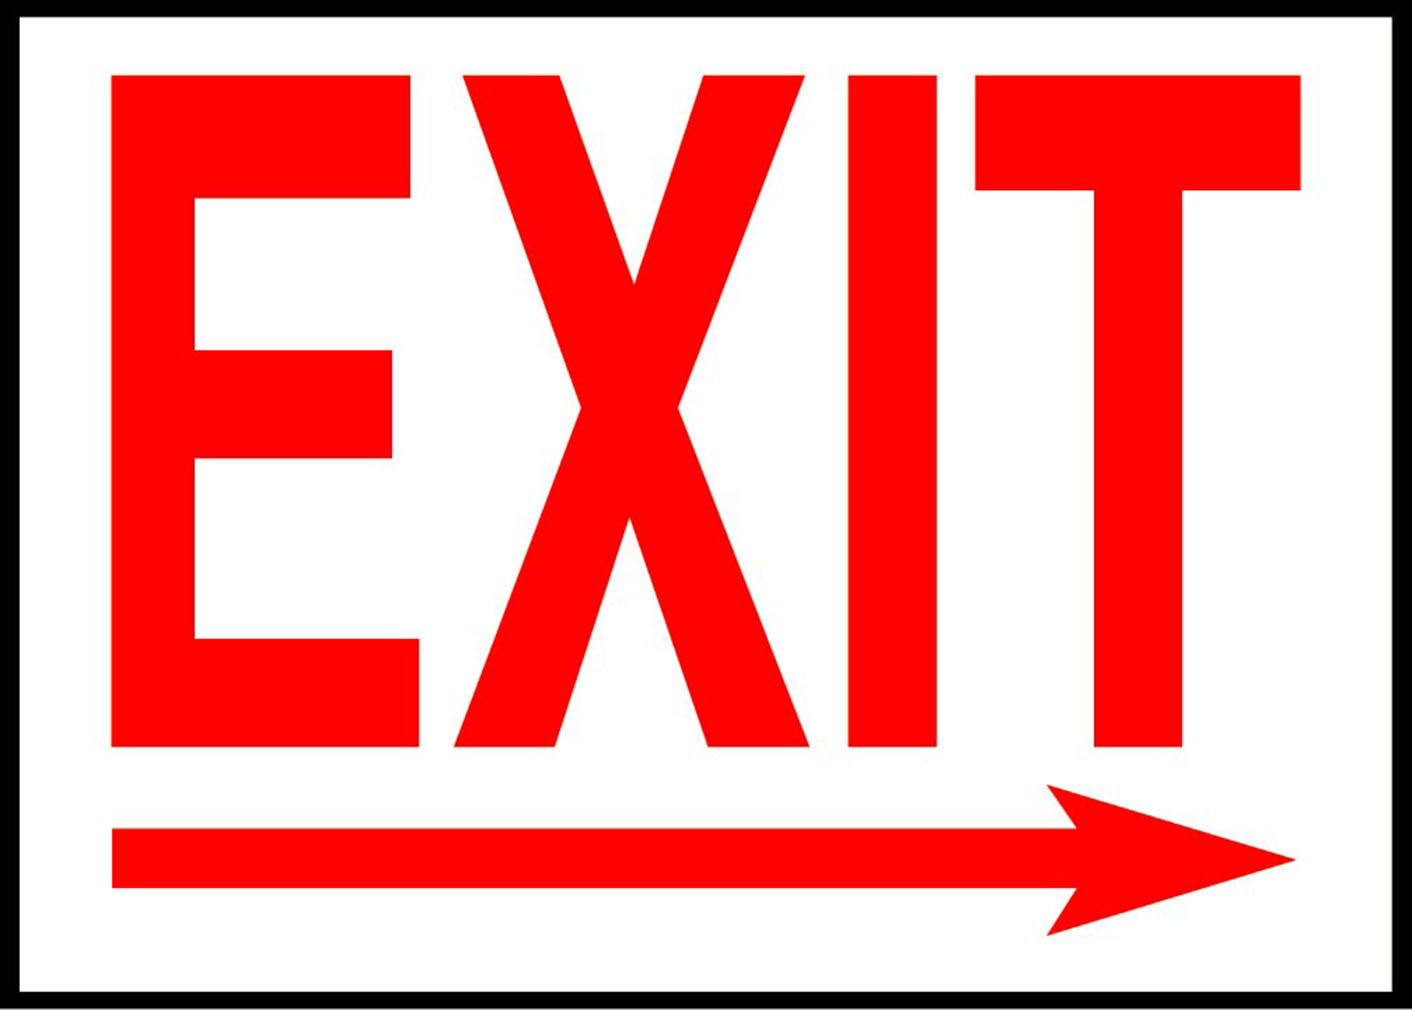 Exit Right Arrow Emergency Exit Osha Ansi Label Decal